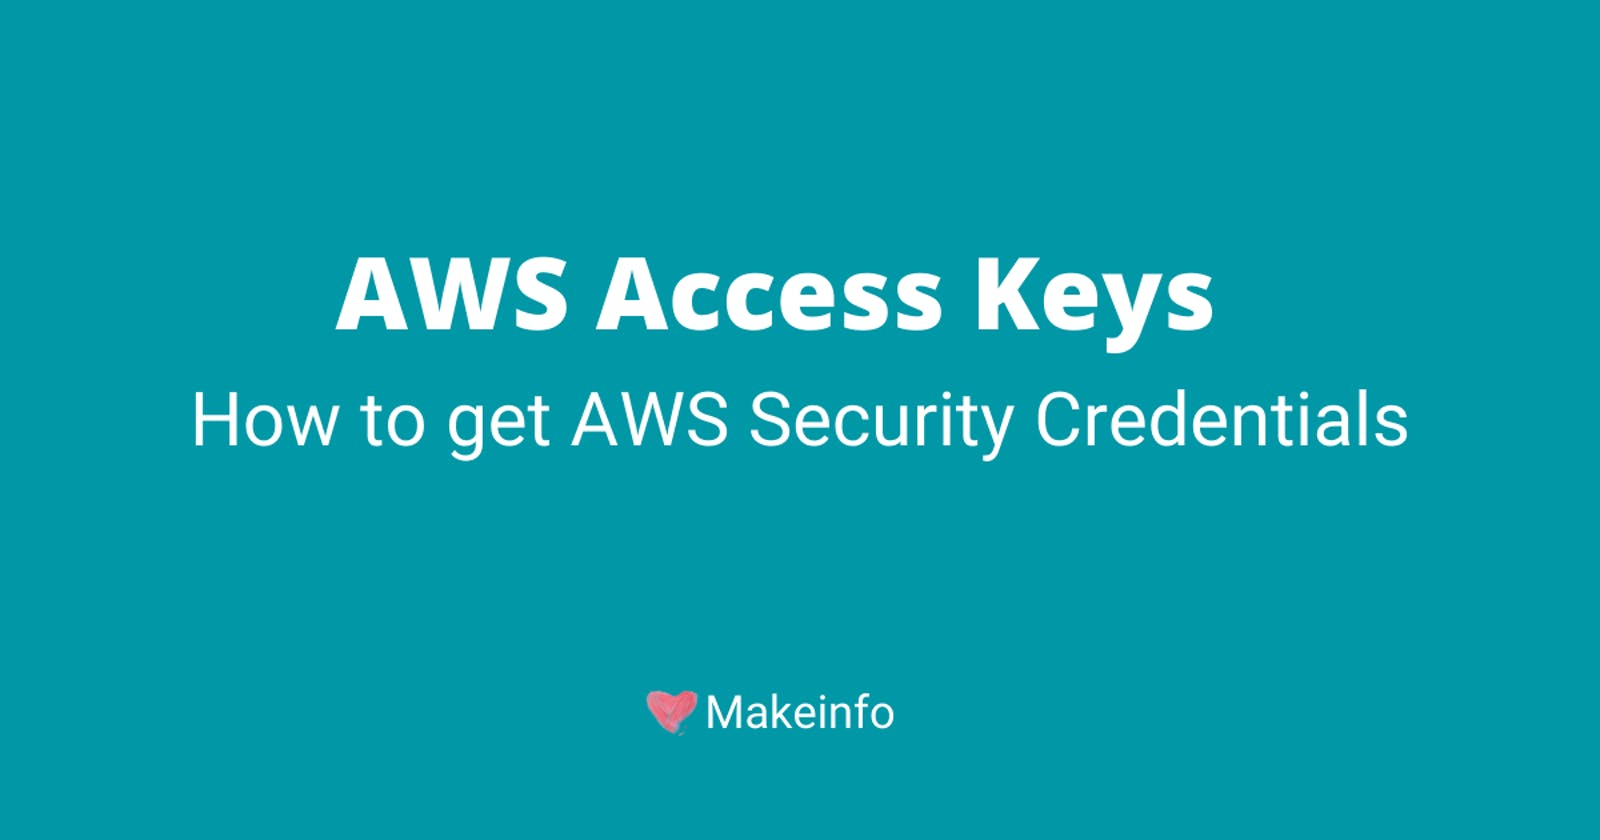 How to get AWS Access keys?